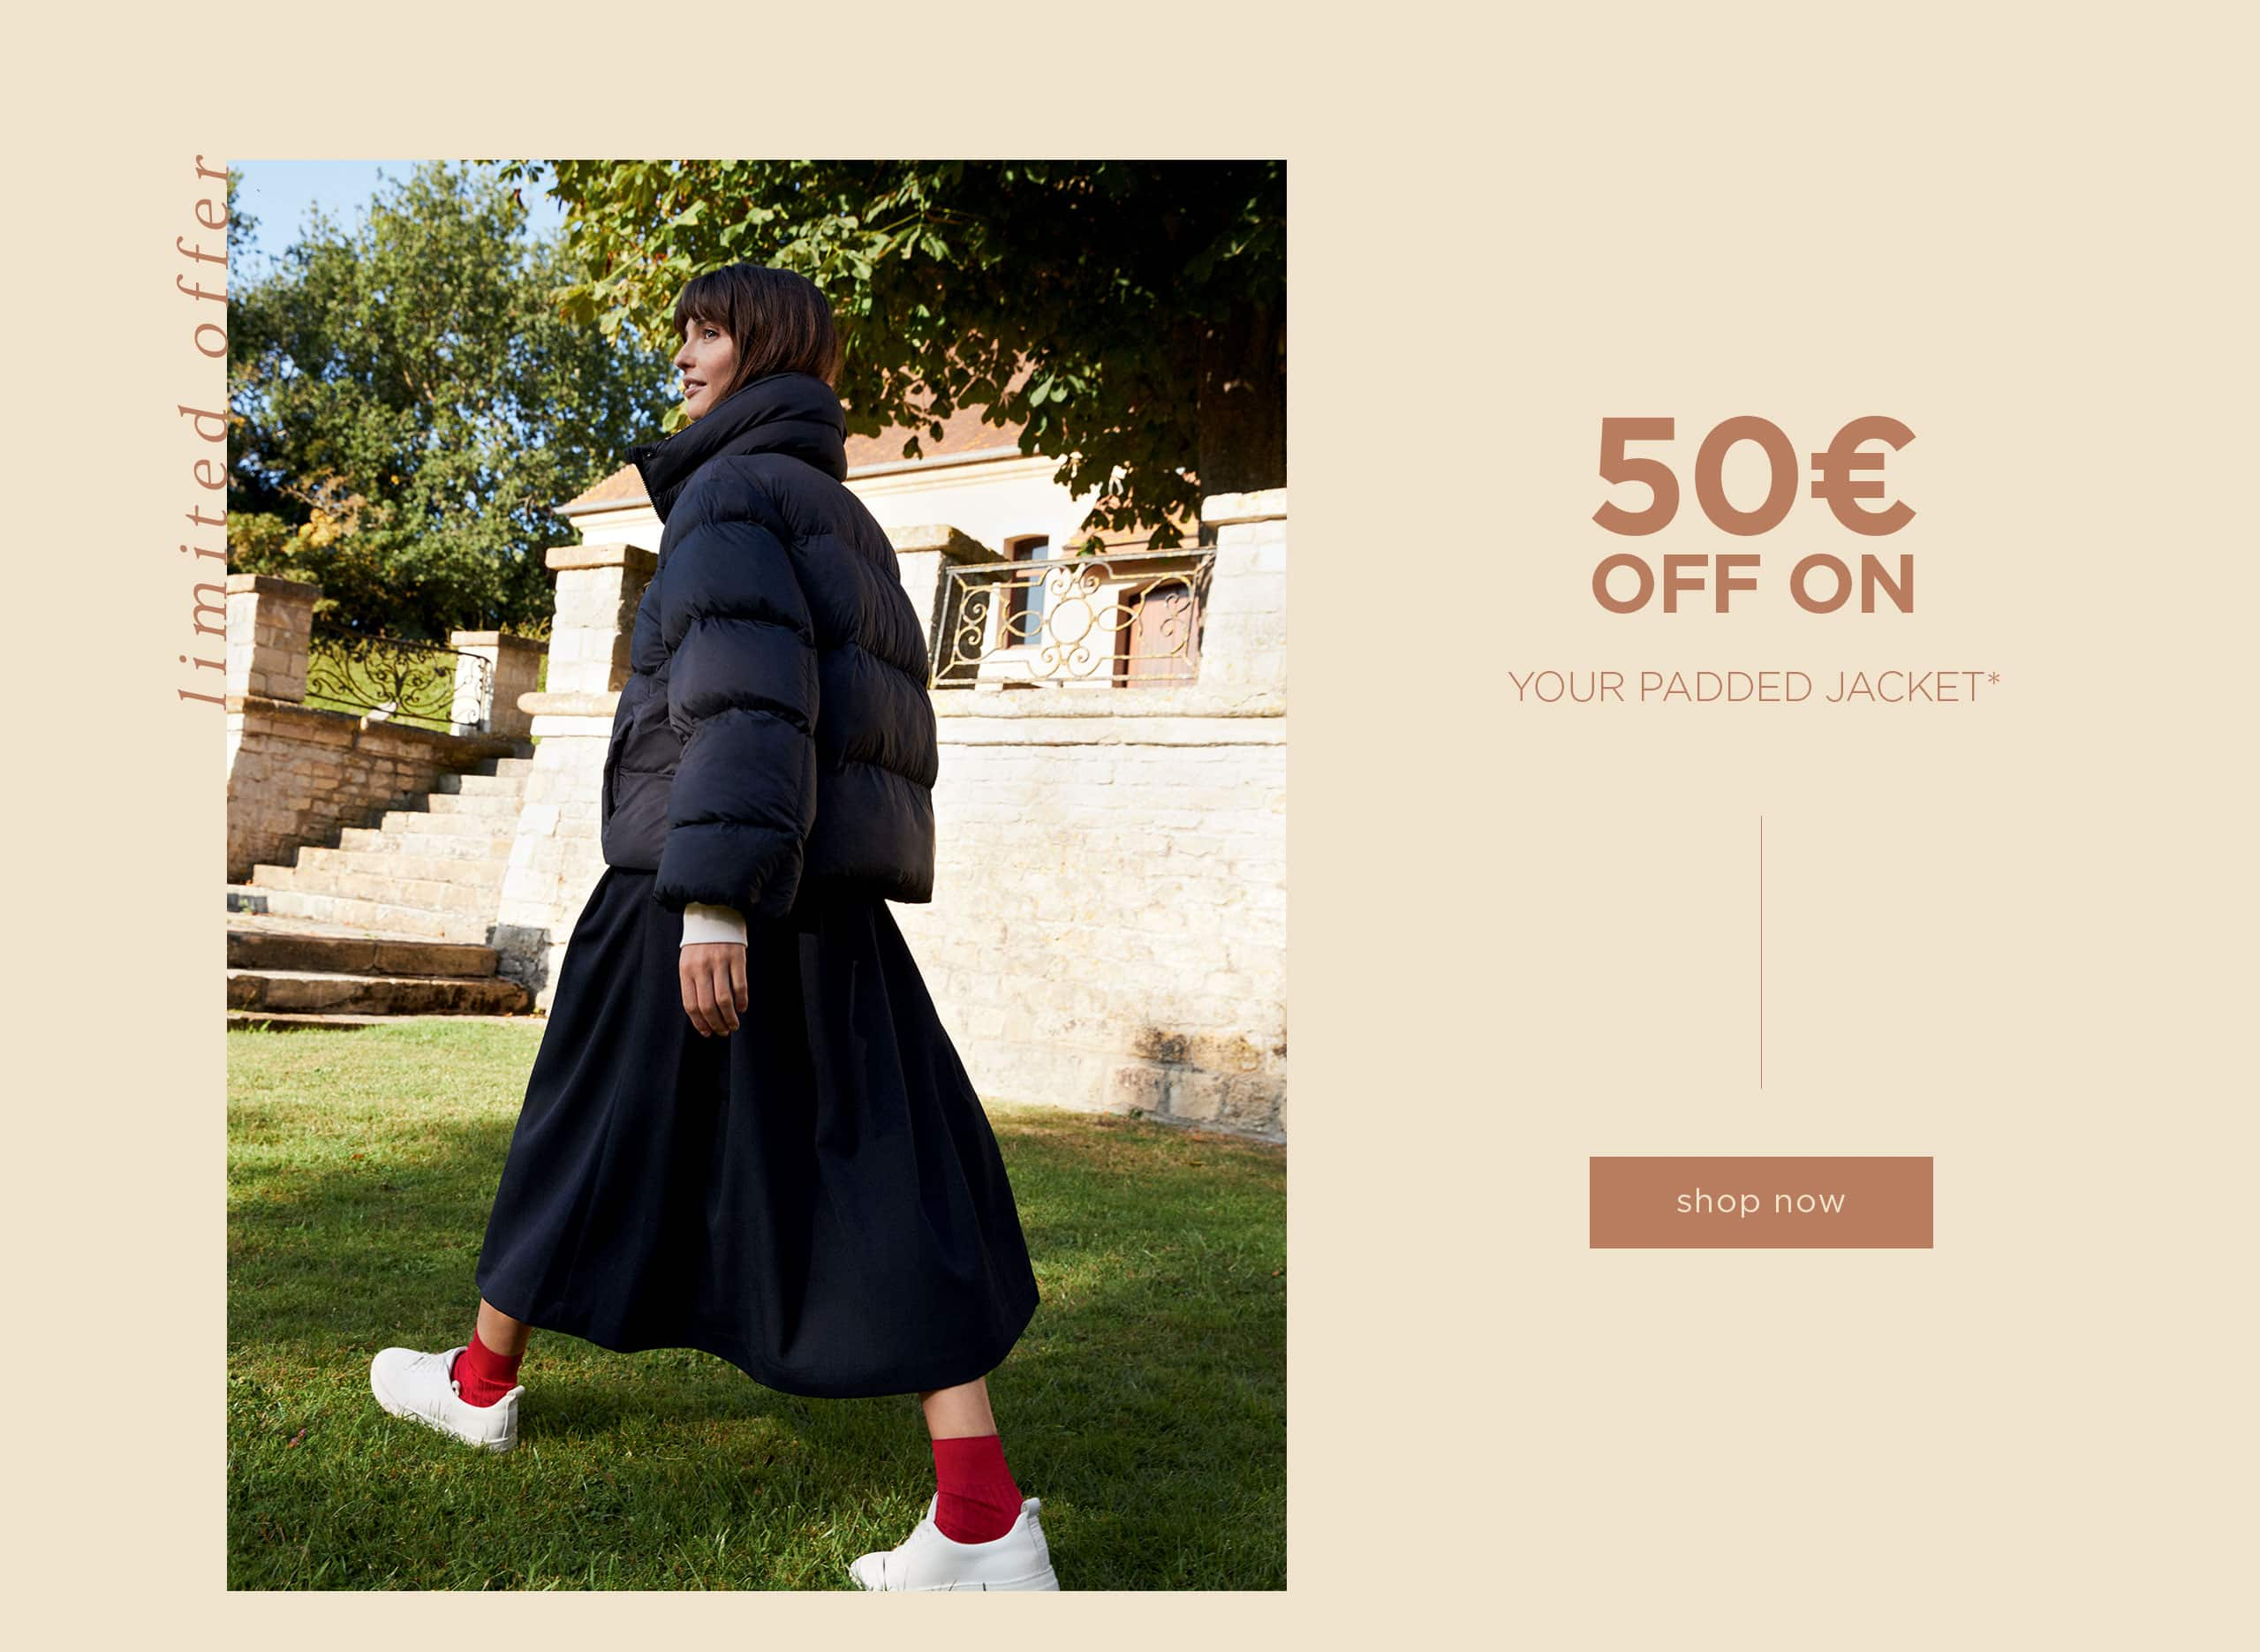 50€ off on your padded jacket